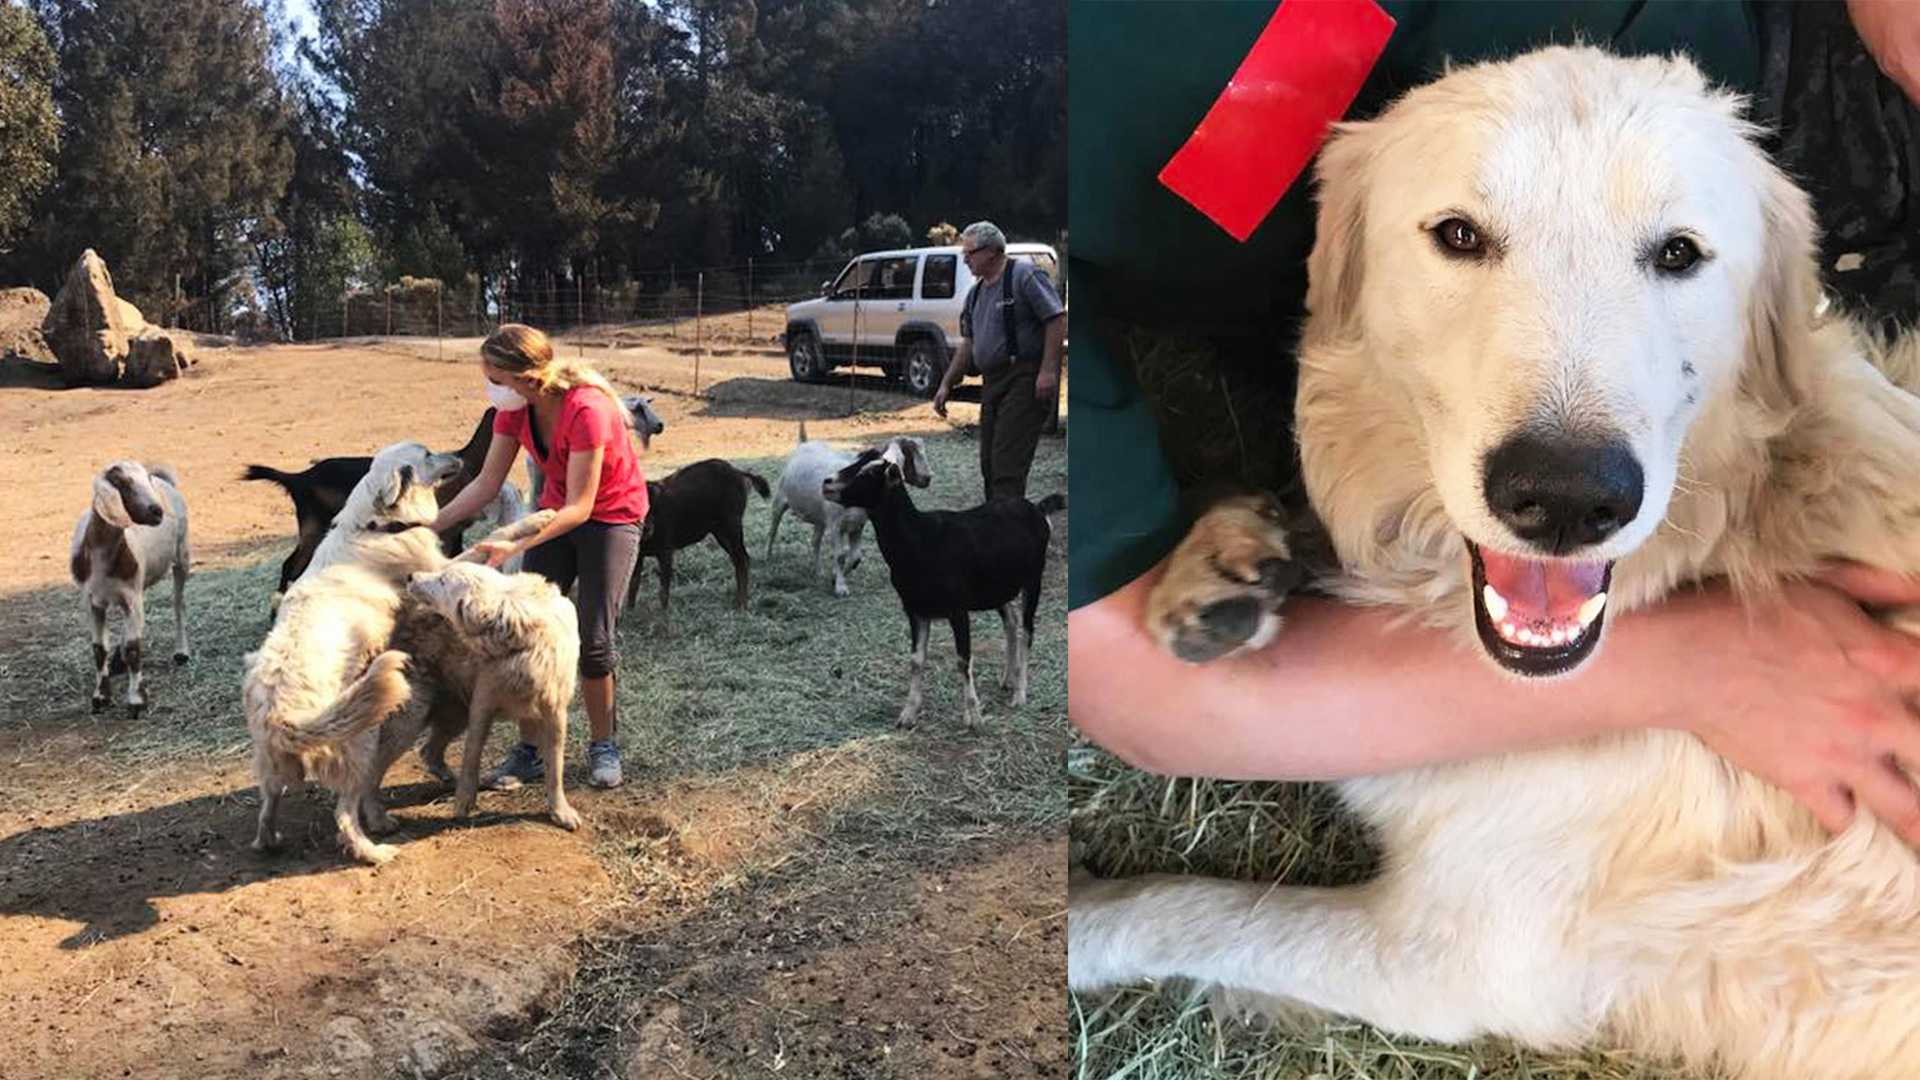 Brave Dog Stays Behind to Guard Goats During California Wildfire